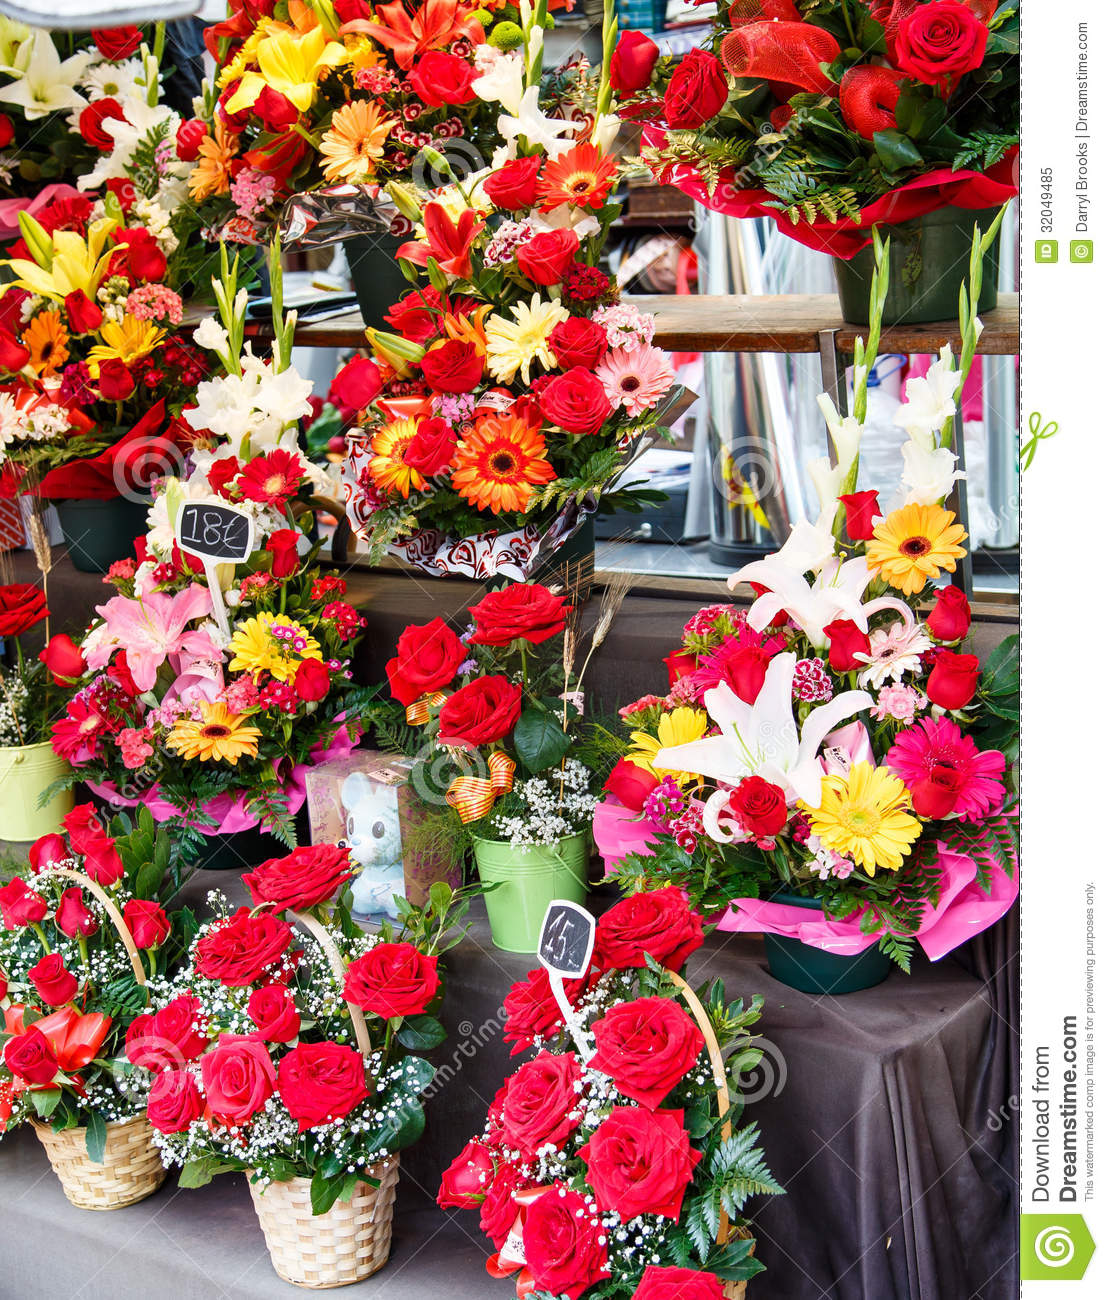 many bouquets in a flower shop stock image - image of lillies